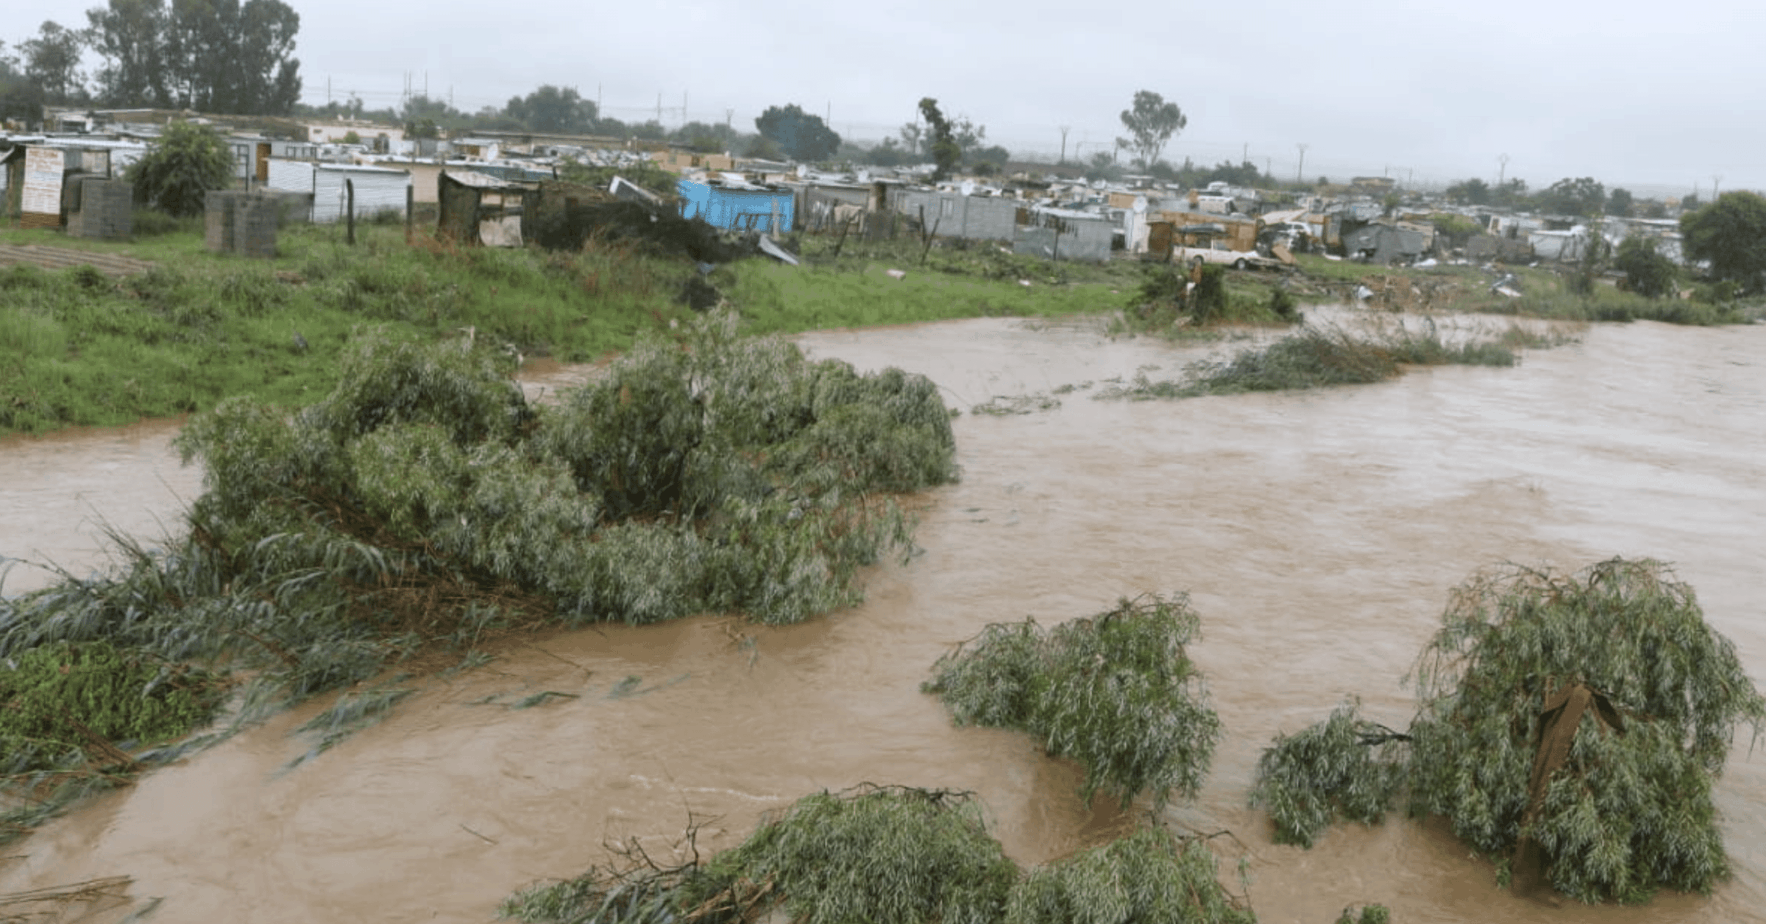 Government confirms that a multi-disciplinary intervention has been launched to curb the impact of tropical storm Elouise. Floods in parts of Gauteng, North West, Limpopo and Mpumalanga have caused severe damage. Photo: @NationalCOGTA/Twitter